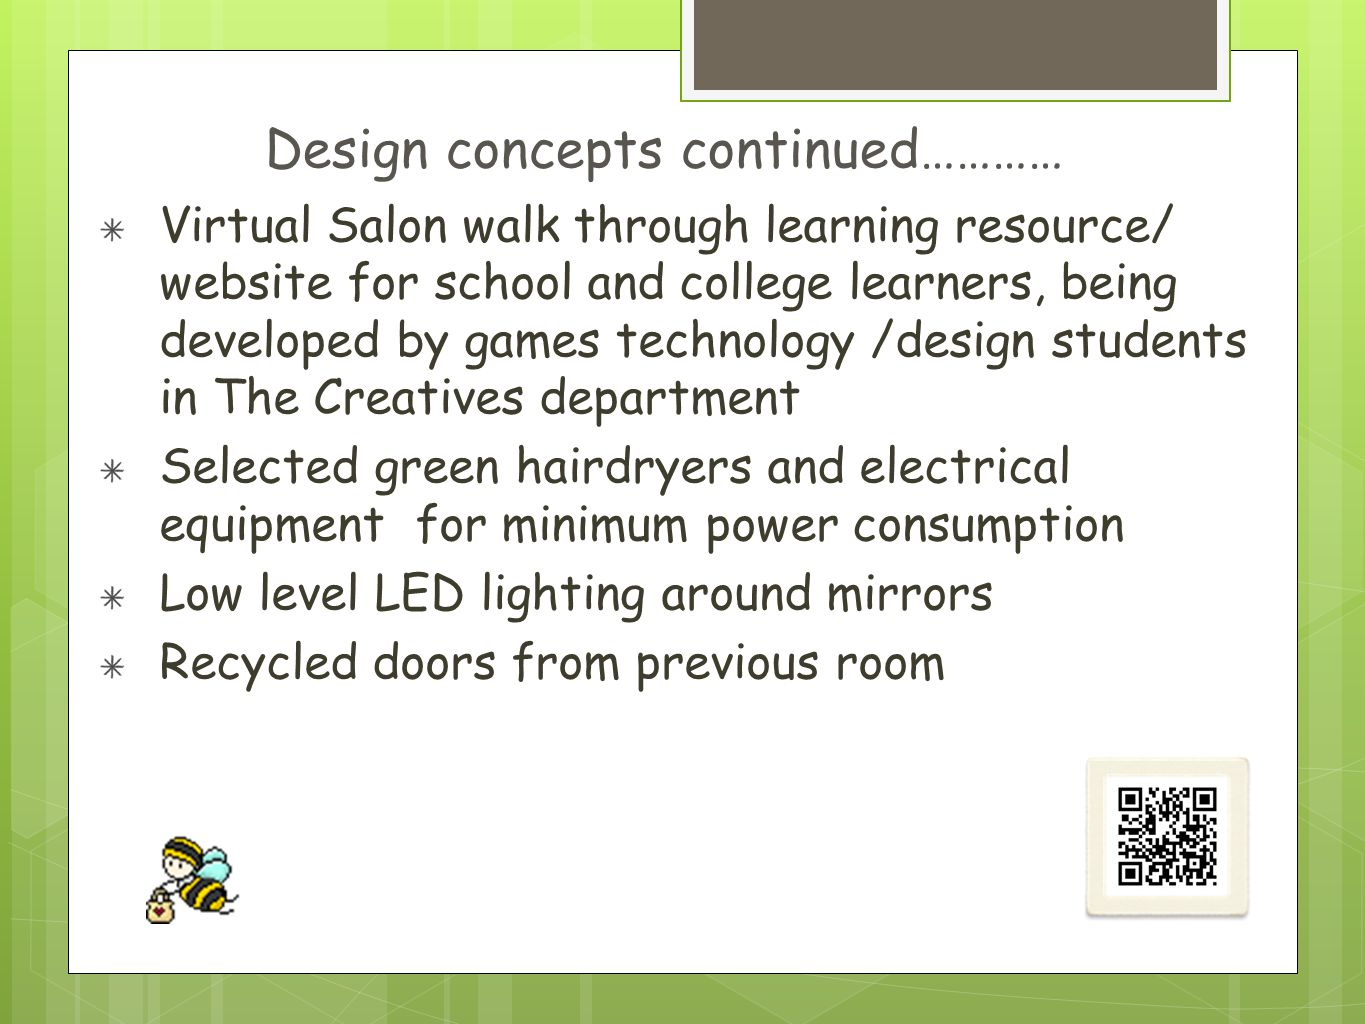 Virtual Salon walk through learning resource/ website for school and college learners, being developed by games technology /design students in The Creatives department Selected green hairdryers and electrical equipment for minimum power consumption Low level LED lighting around mirrors Recycled doors from previous room Design concepts continued…………